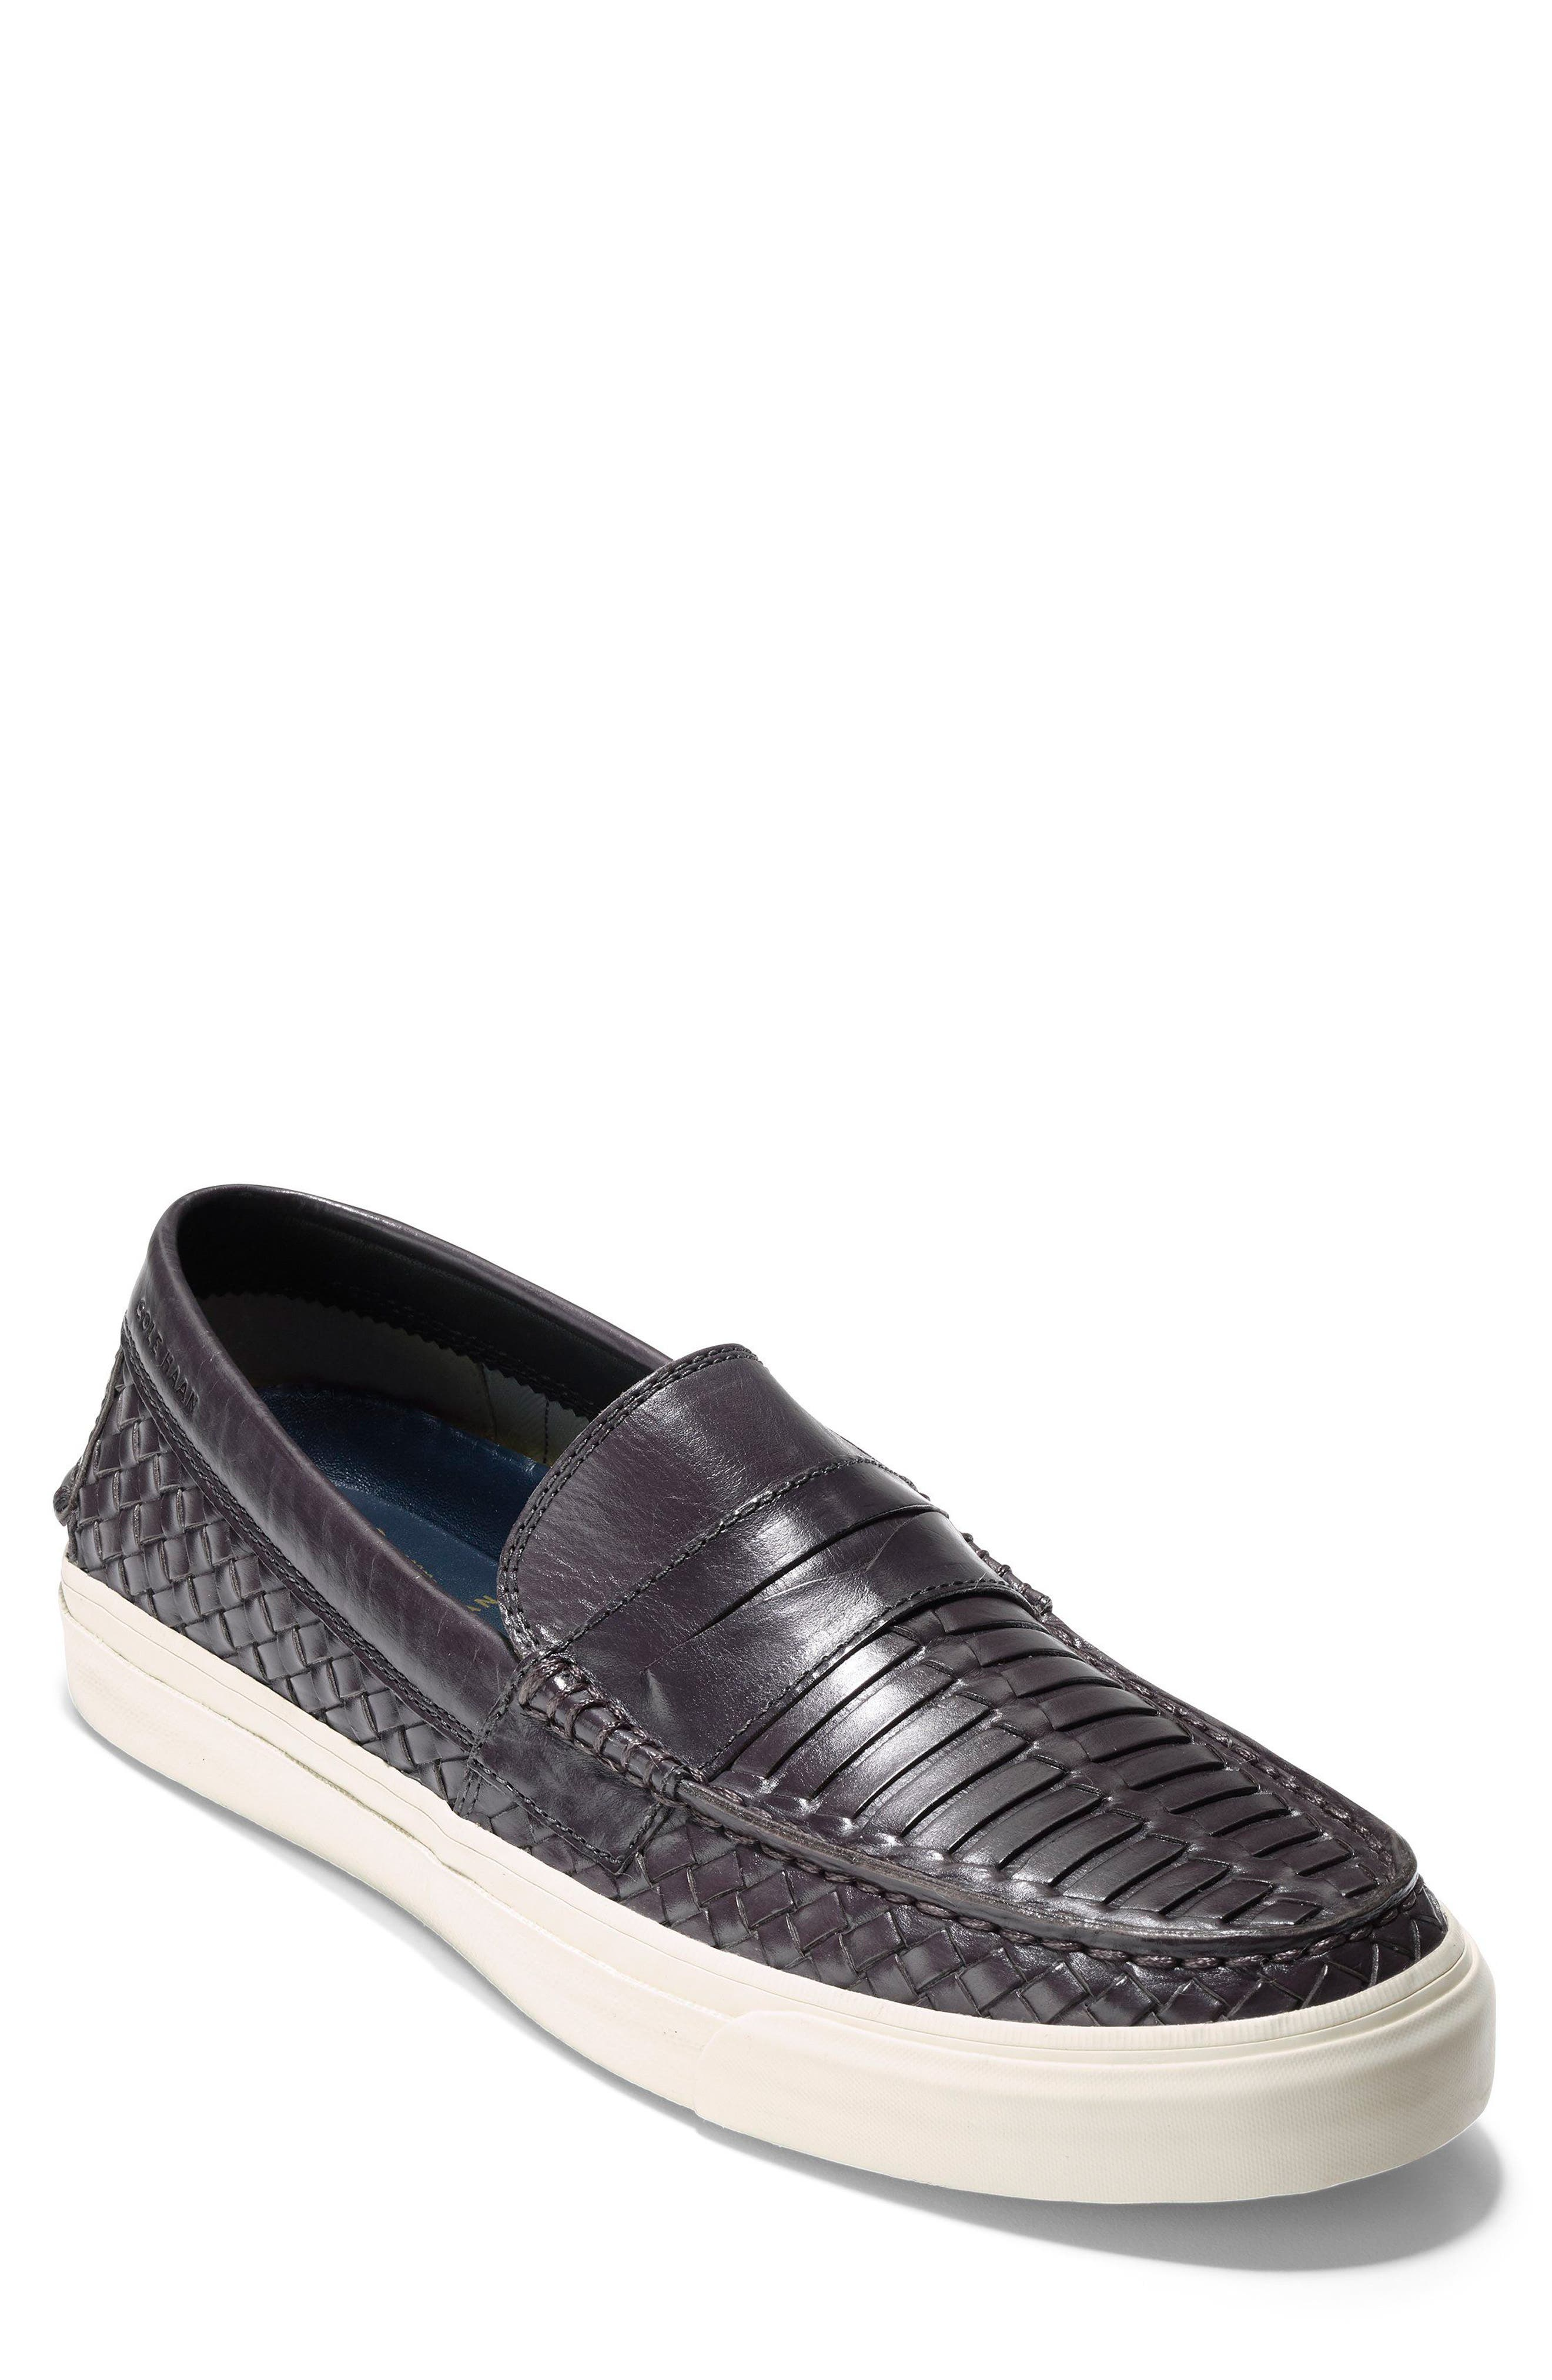 Pinch Weekend LX Huarache Loafer,                             Main thumbnail 1, color,                             020